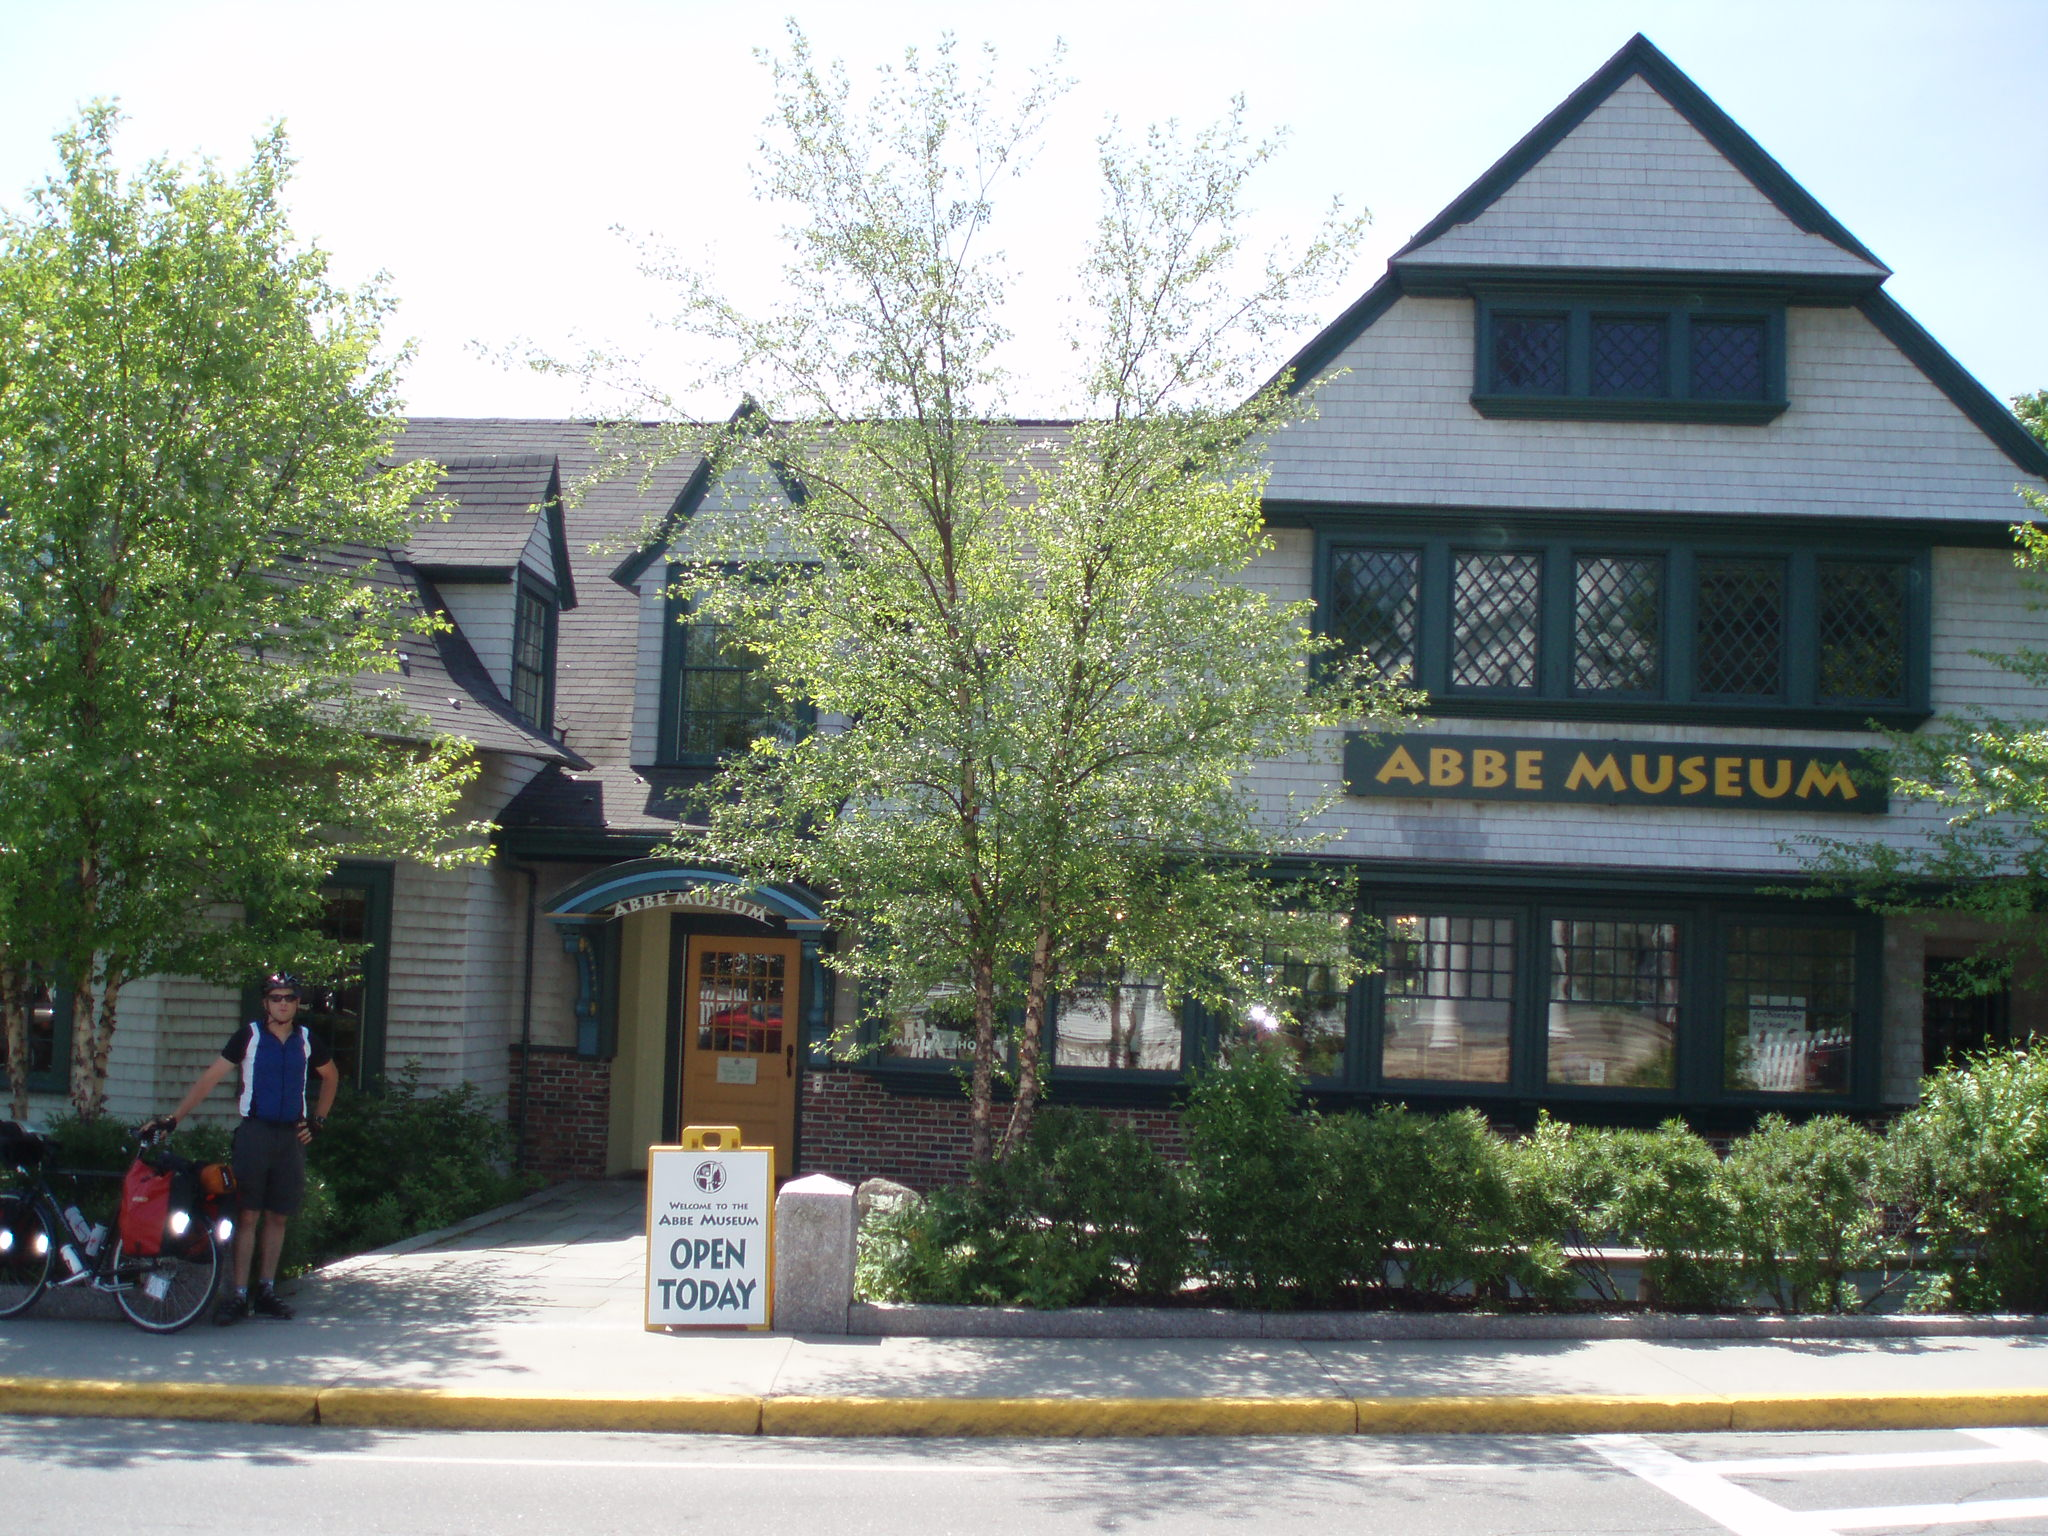 at the Abbe Museum